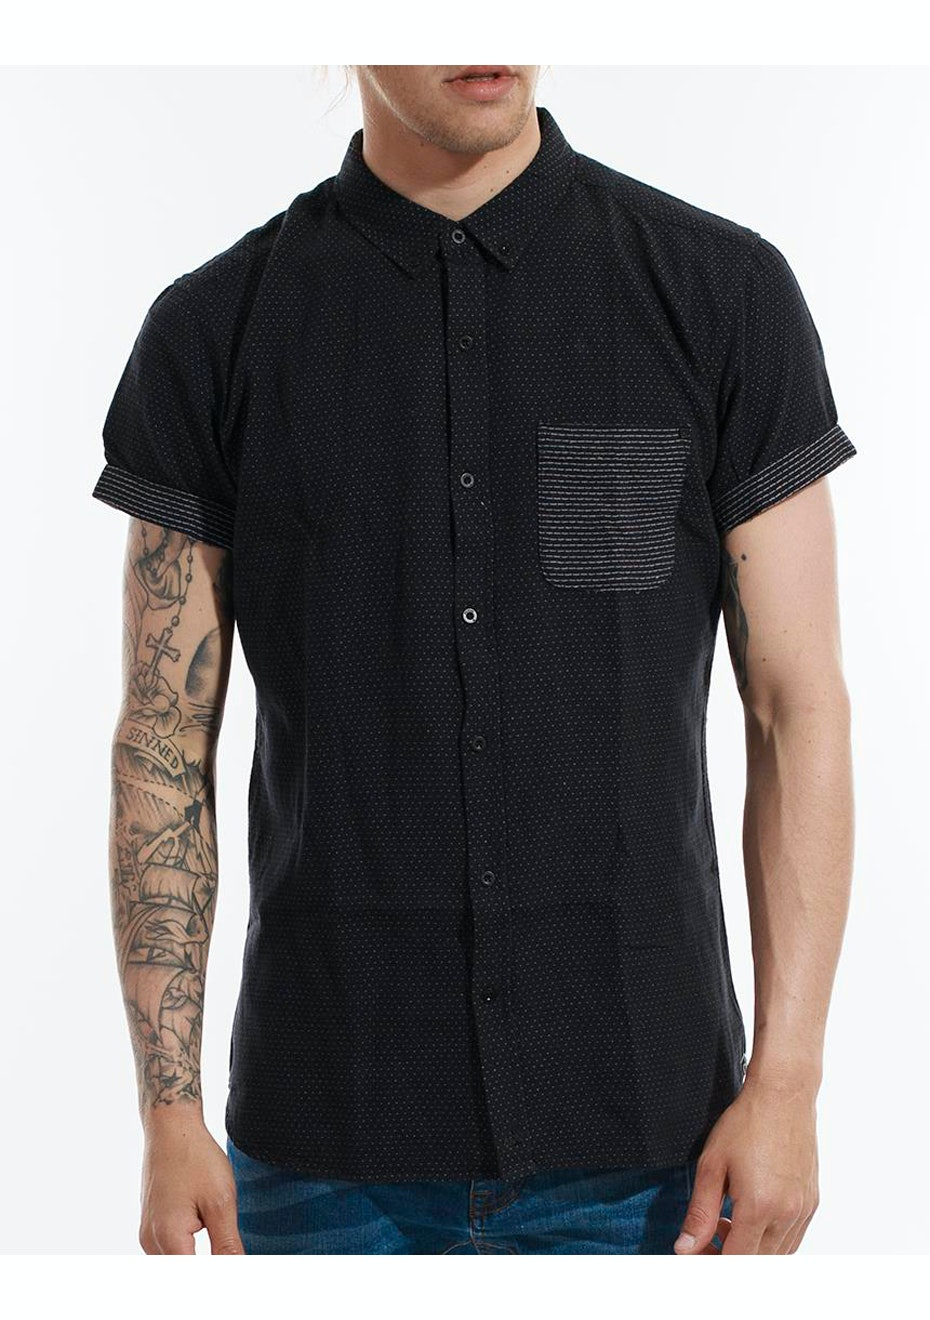 Deacon - Speculate SS Shirt - Black